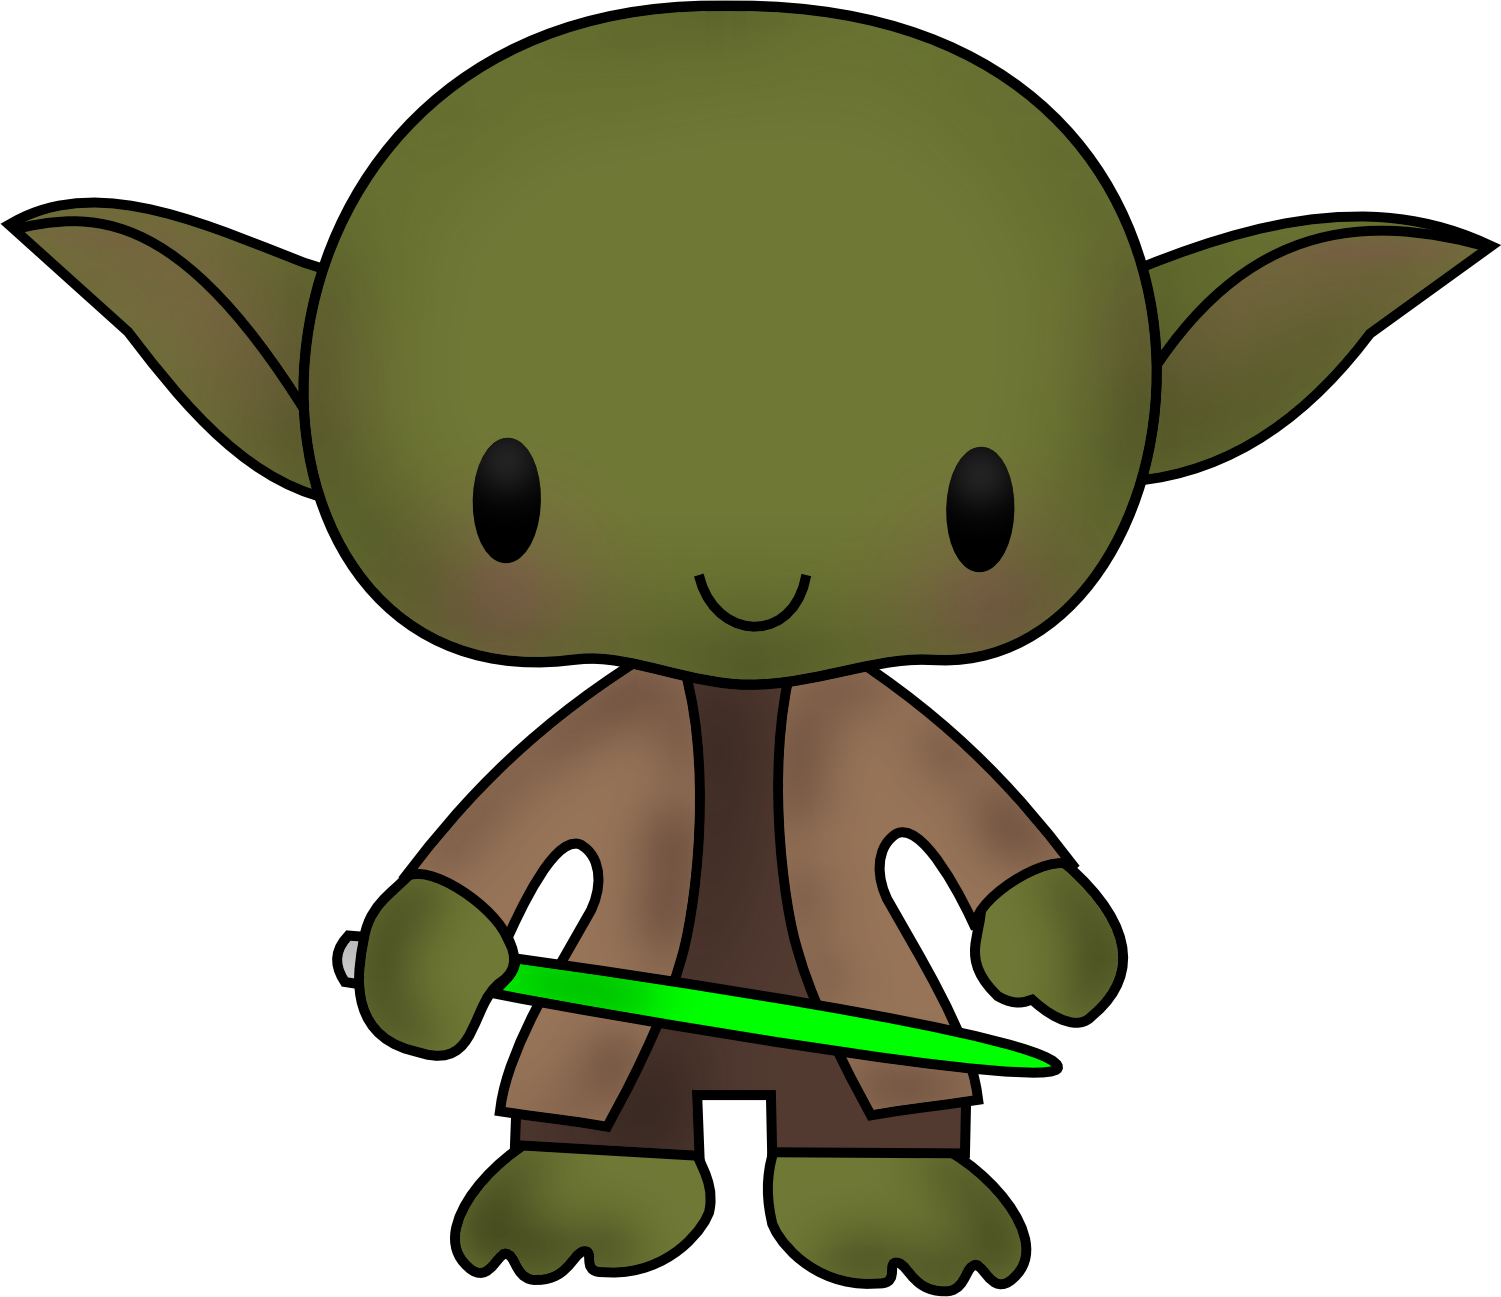 1501x1297 Luke Skywalker Clipart Cute